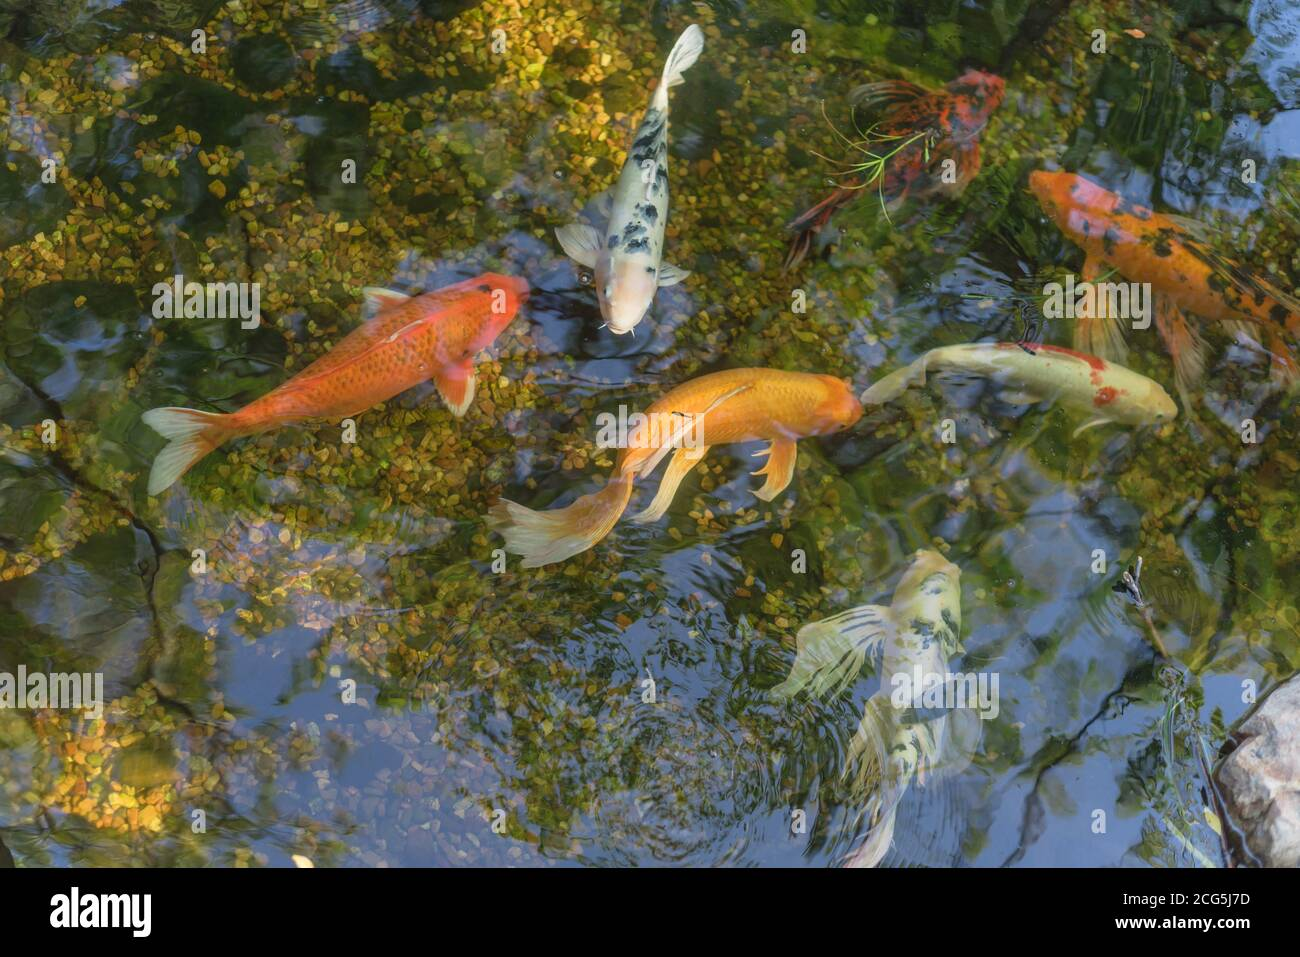 Mixed color beautiful koi fishes swimming at clear pond in botanic garden near Dallas, Texas, USA Stock Photo